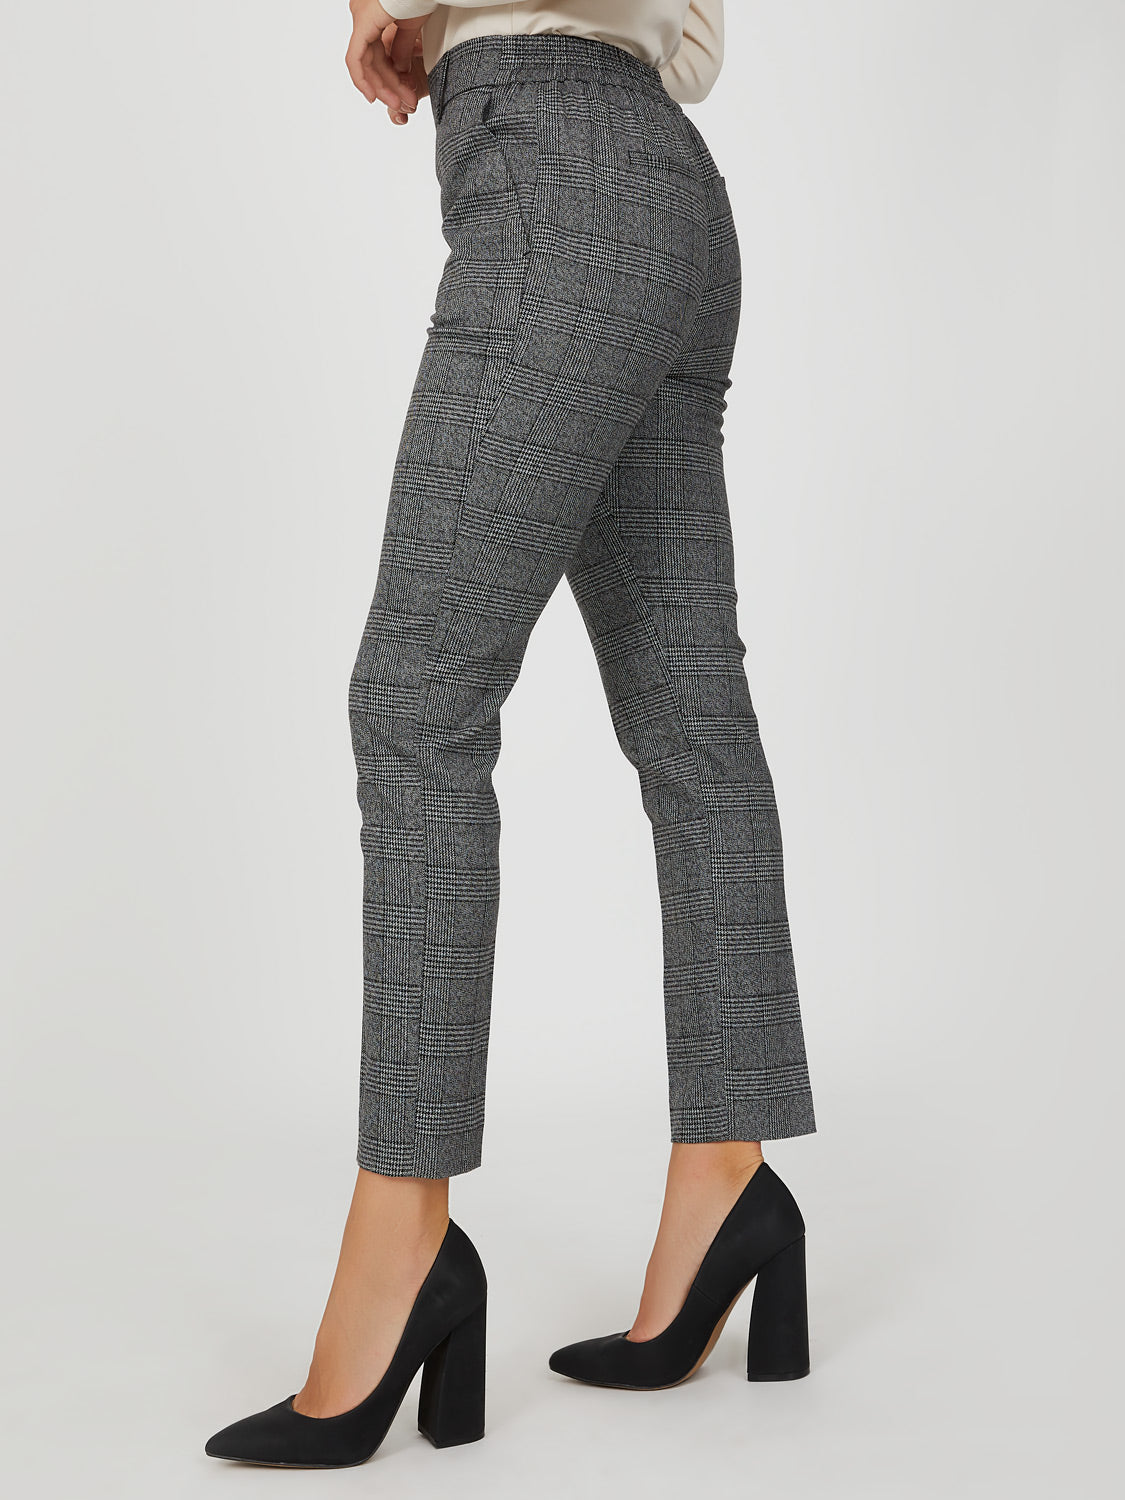 Classic Rise Plaid Trouser